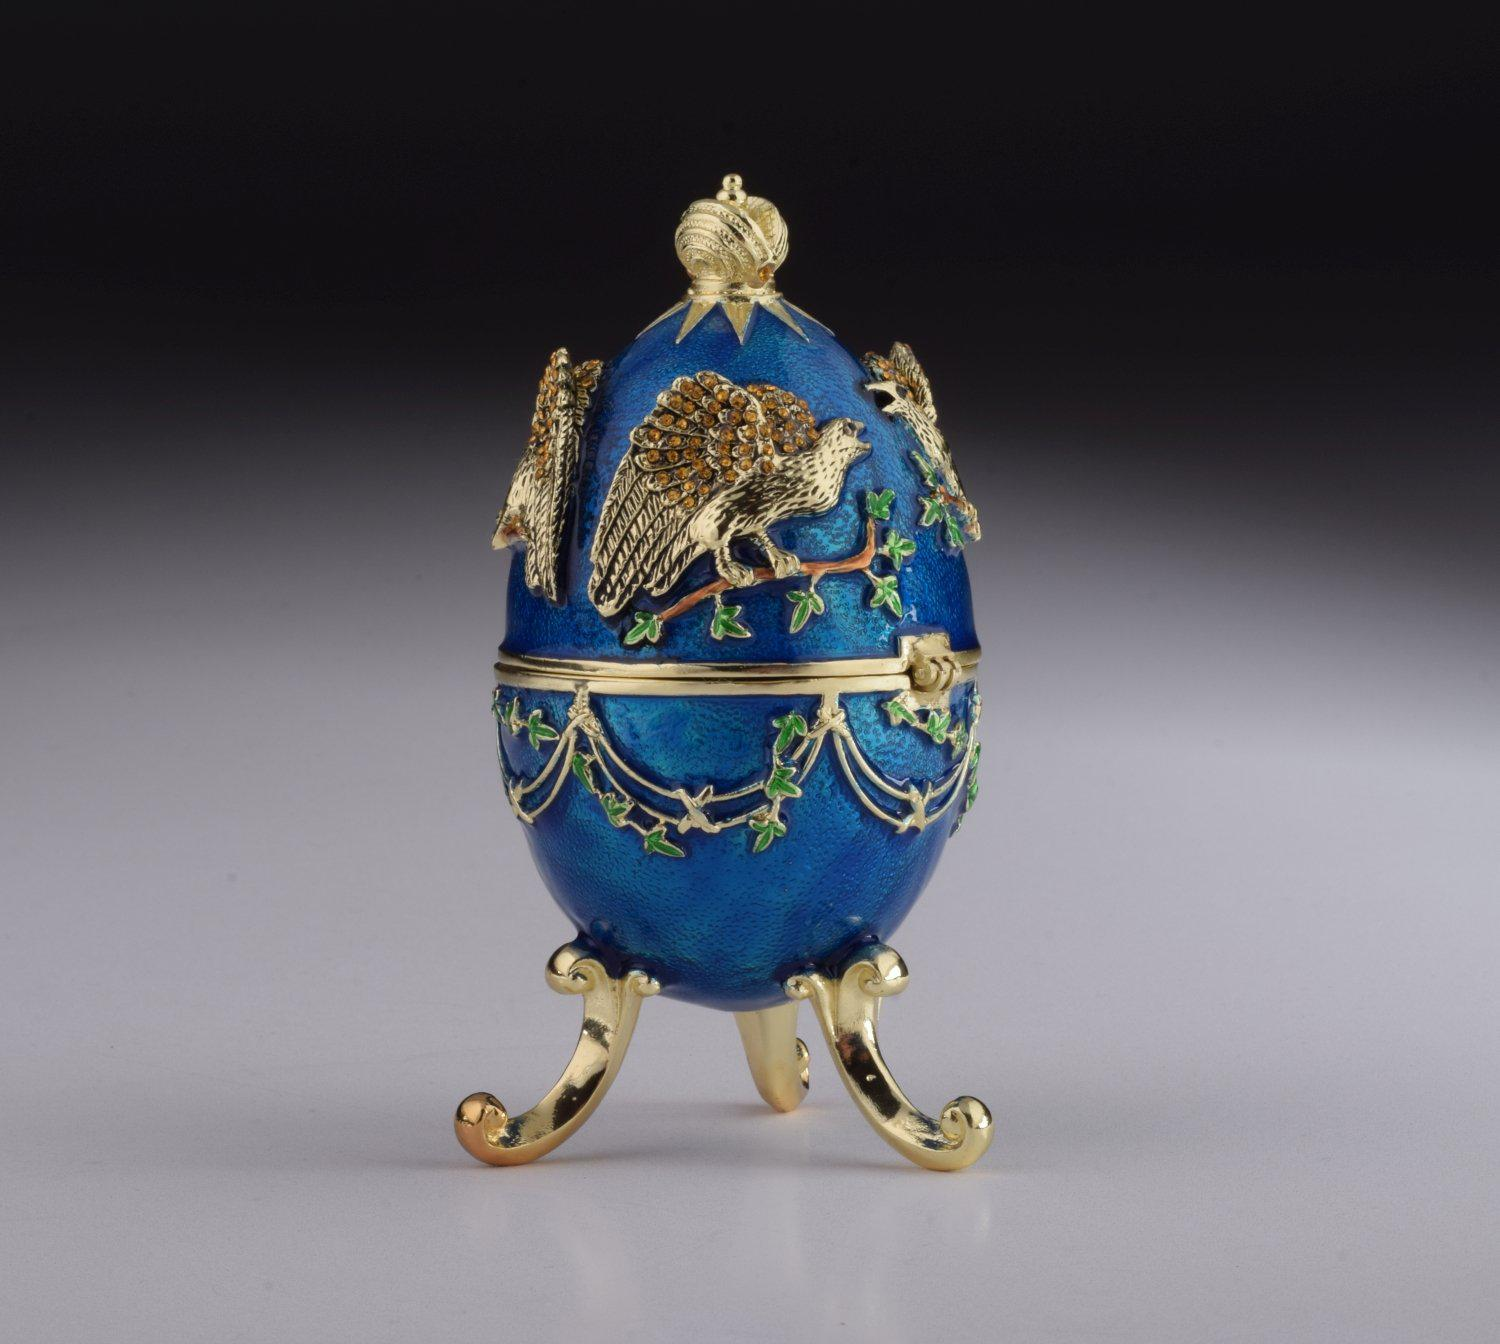 Blue Faberge Egg With Eagles - Plays Music